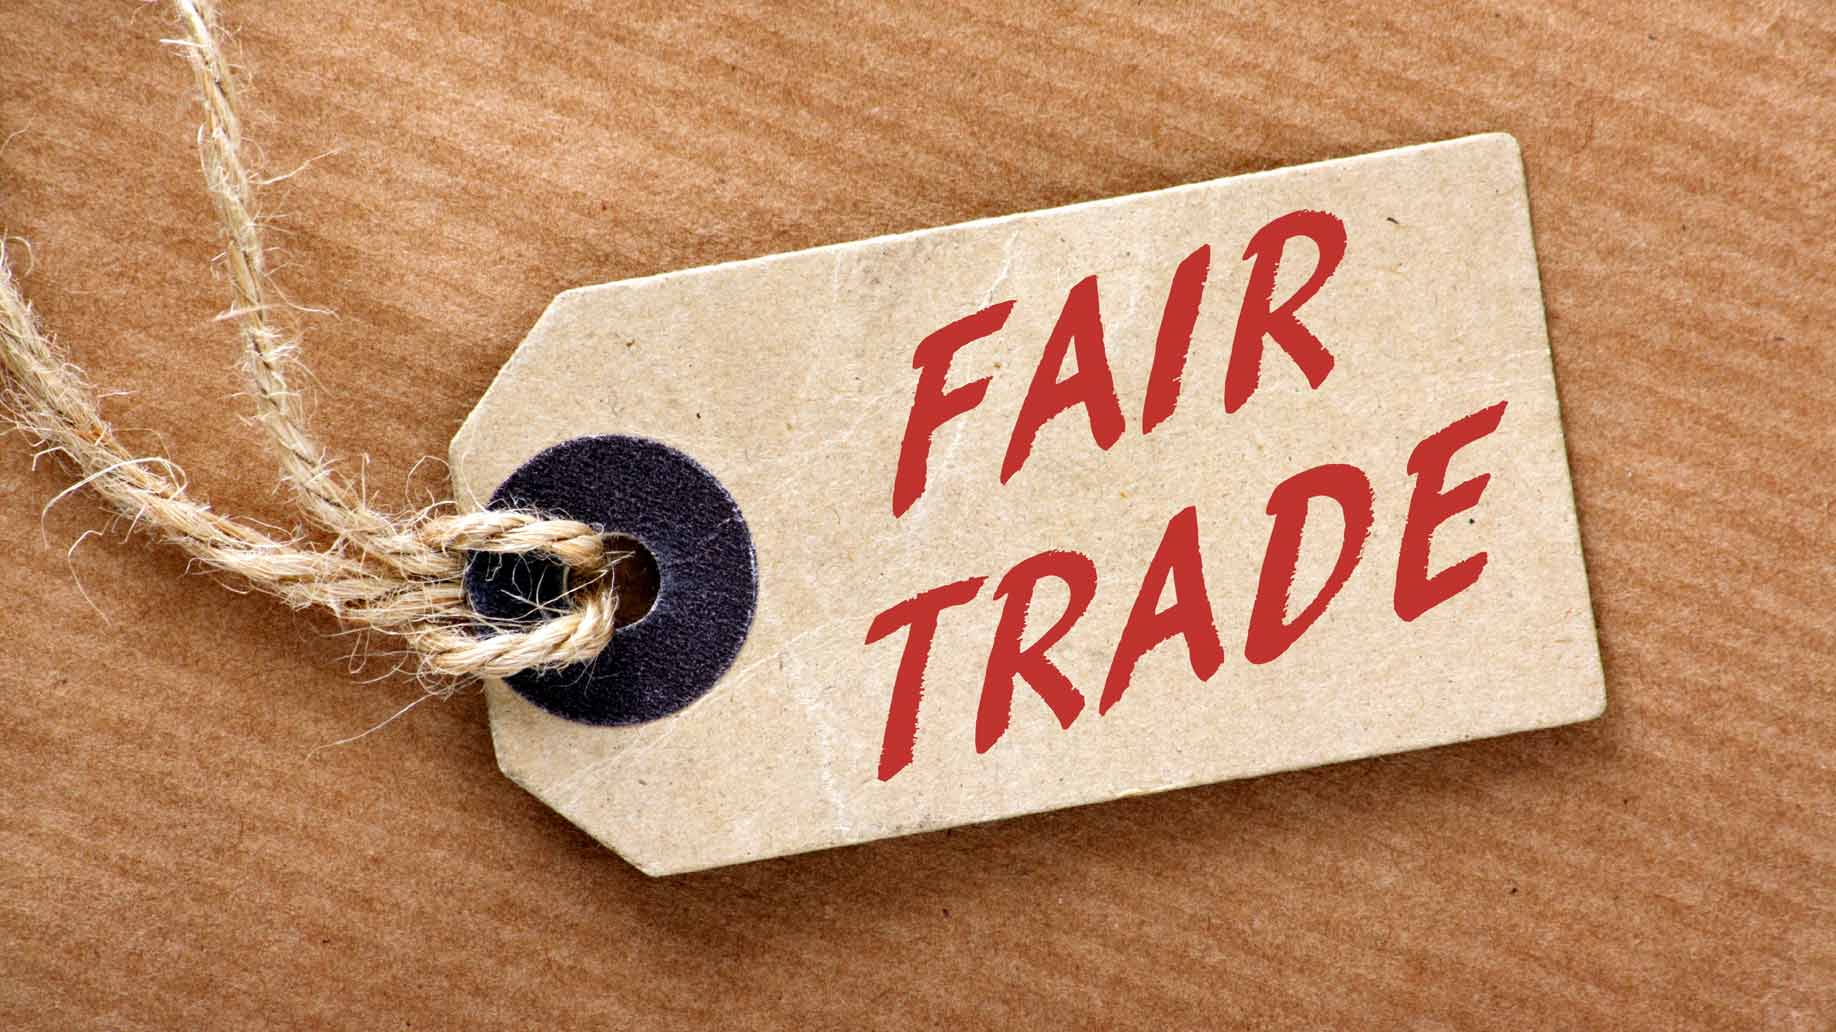 Loans For Fair Credit >> What Is Fair Trade and What Does It Mean? - Definition, Products & Facts